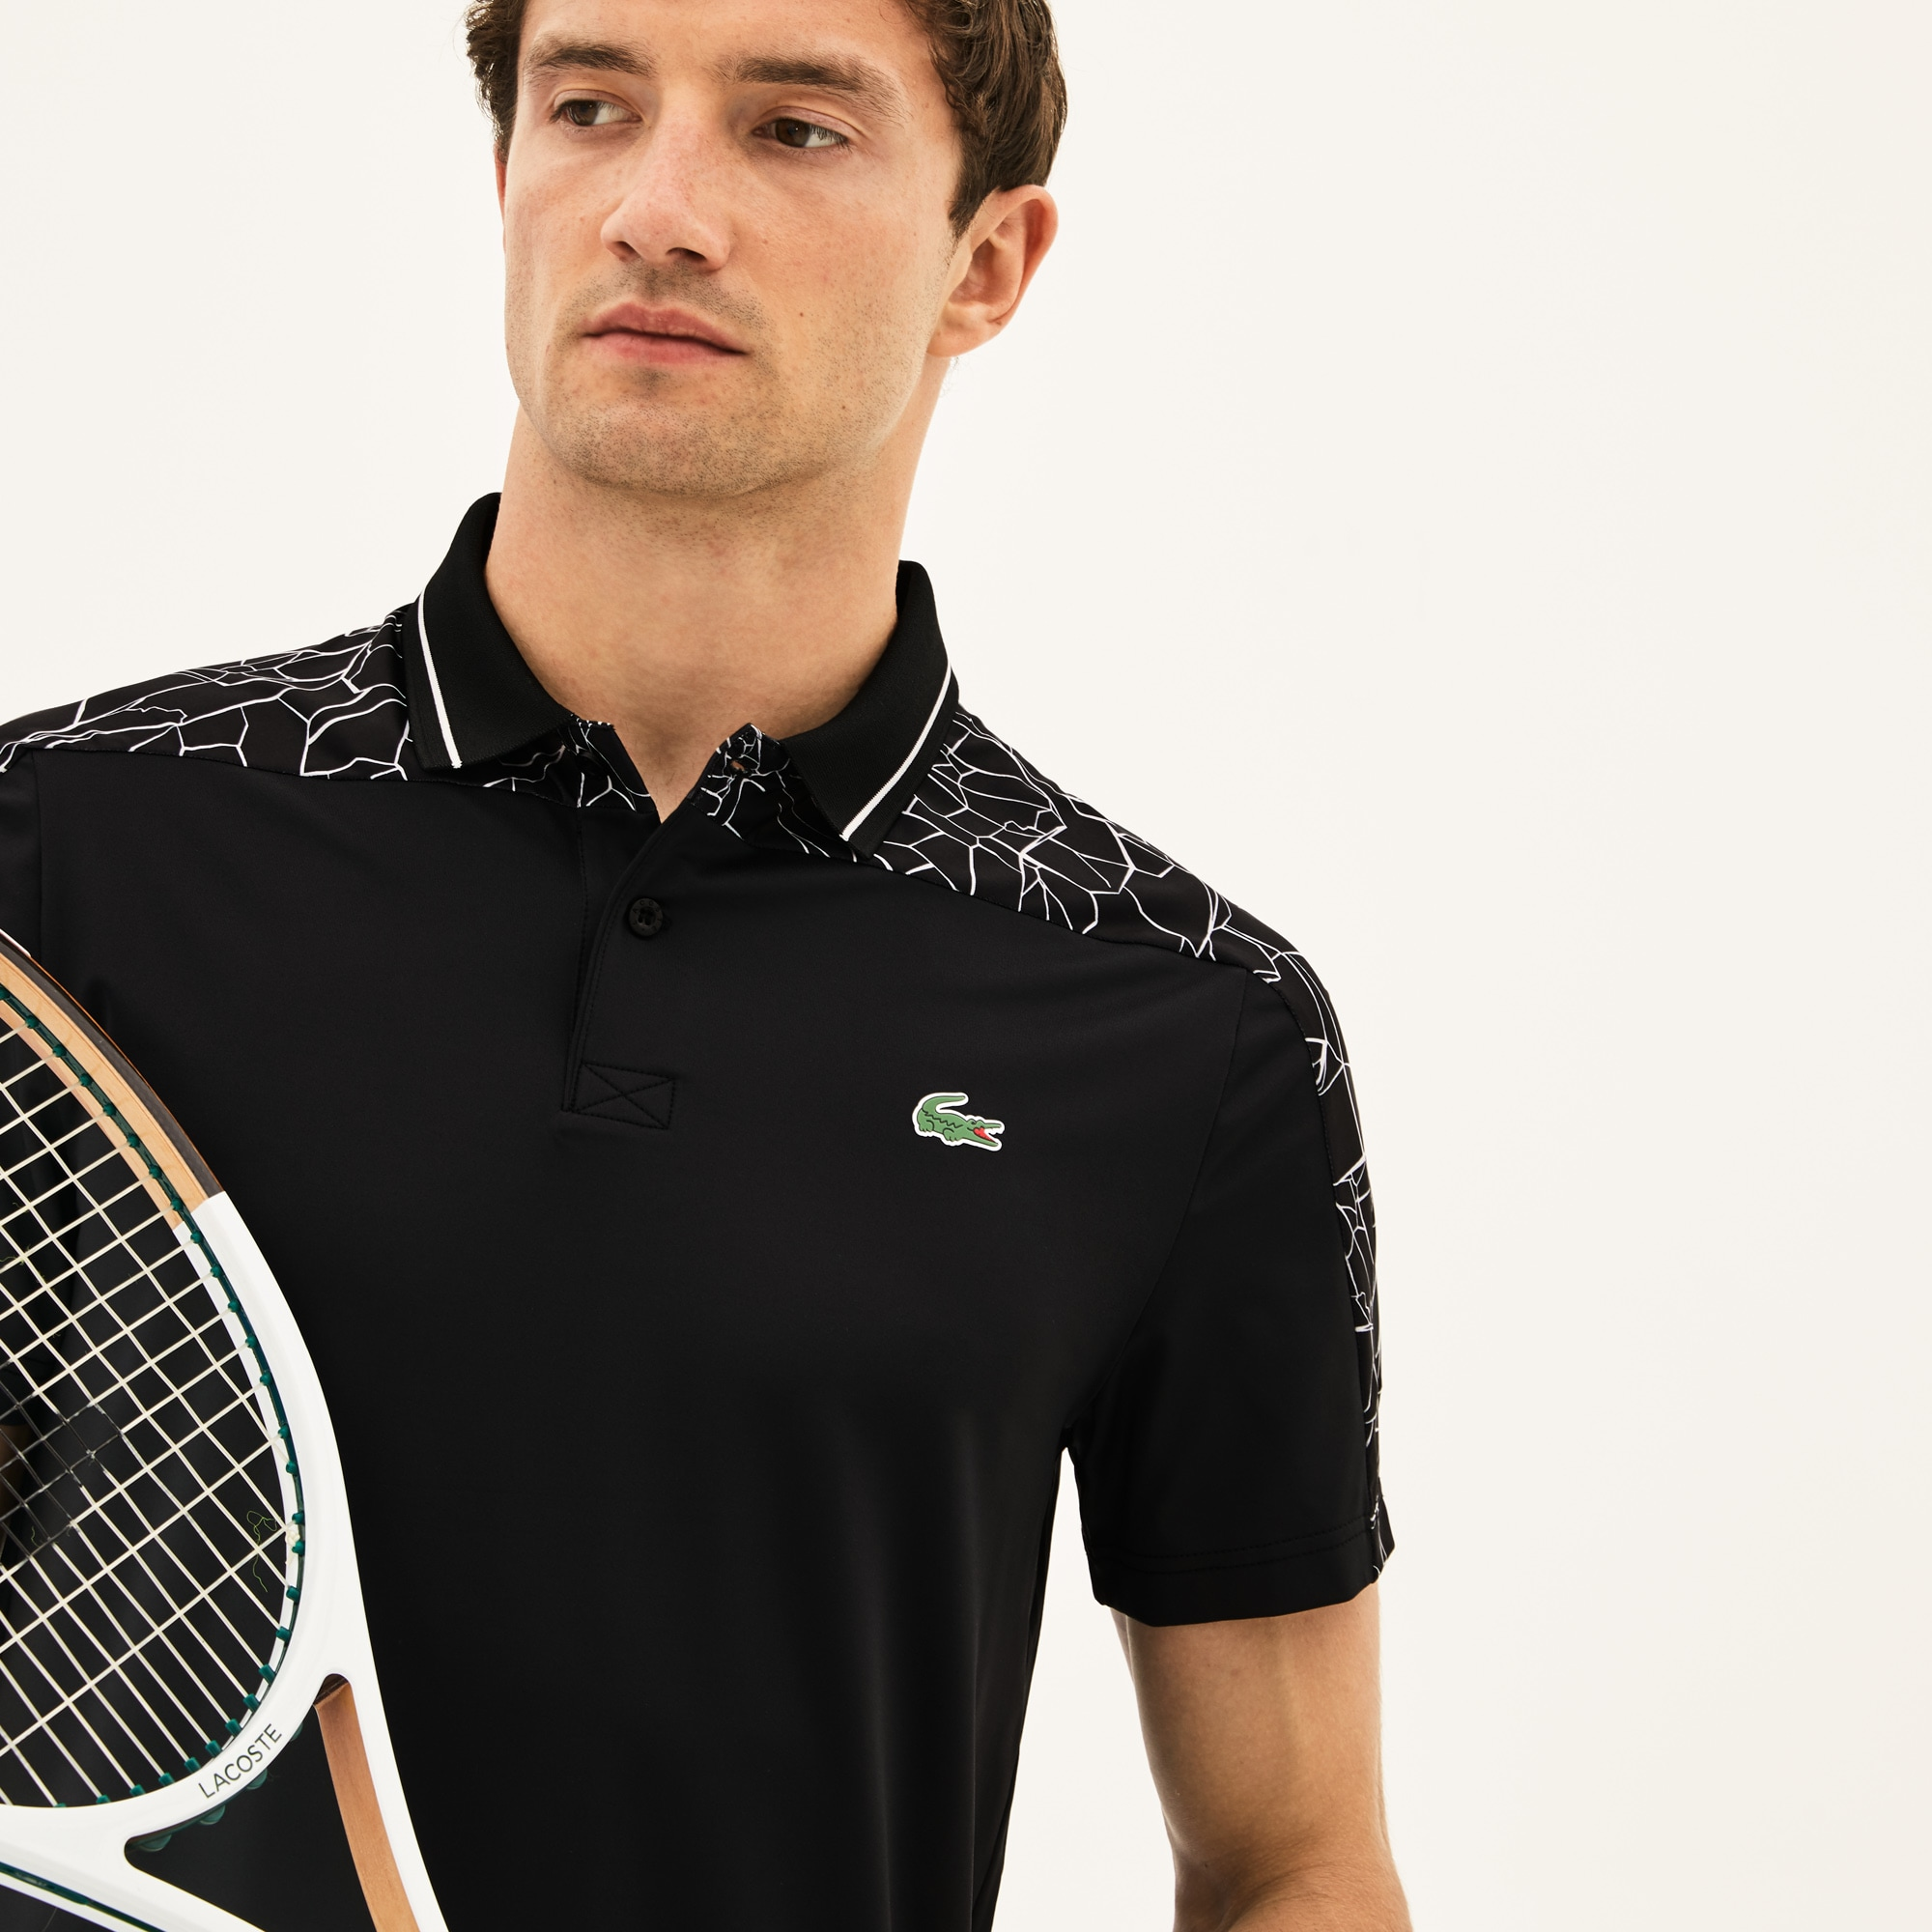 Polo De Hombre Lacoste SPORT Novak Djokovic-On Court Collection En Tejido De Punto Técnico Elástico